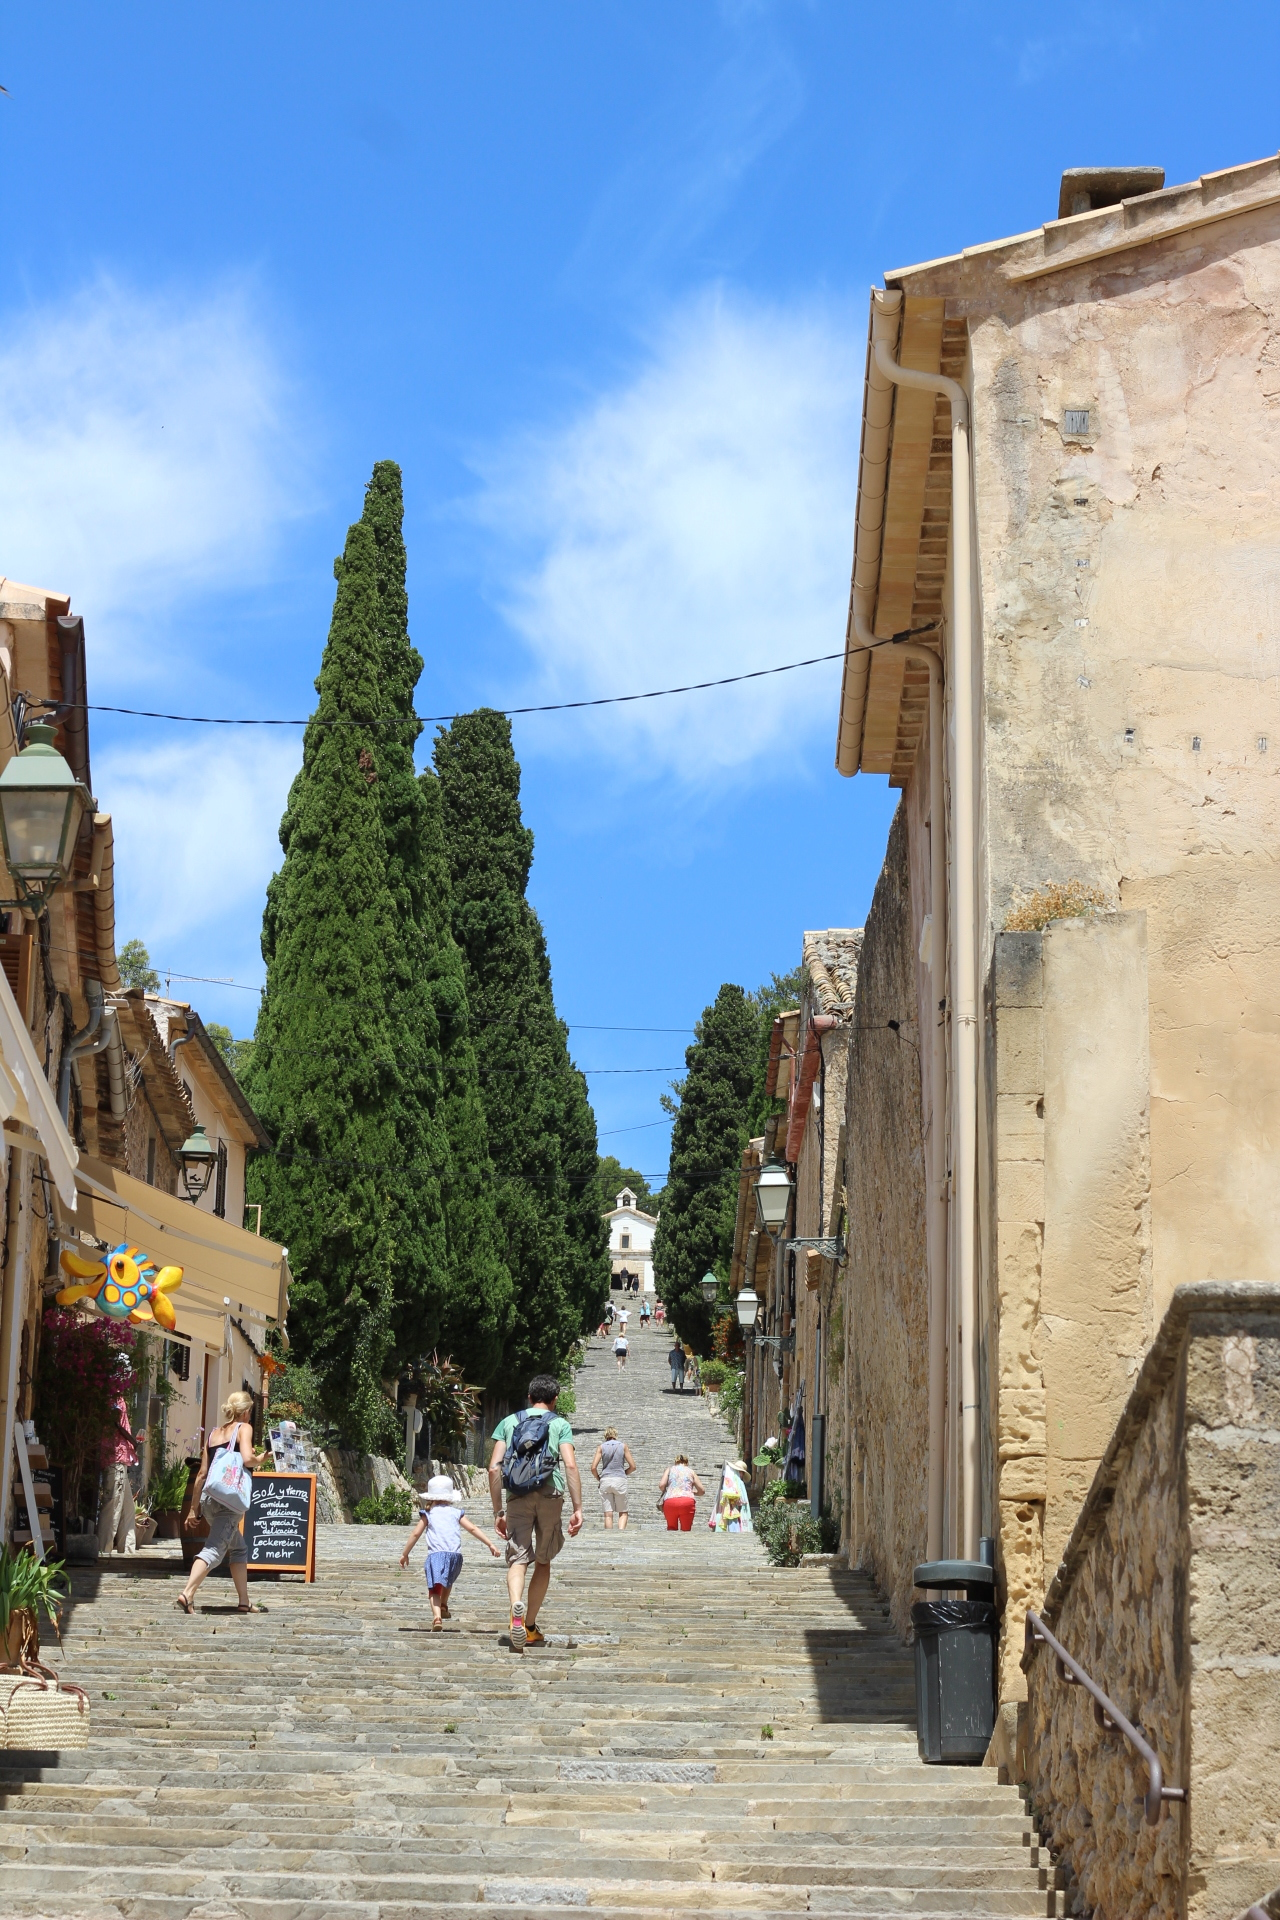 3) Climb the Calvary steps in Pollenca - There is a lovely view of the town from the top, and great bars/cafes in the square as you return to the town itself.